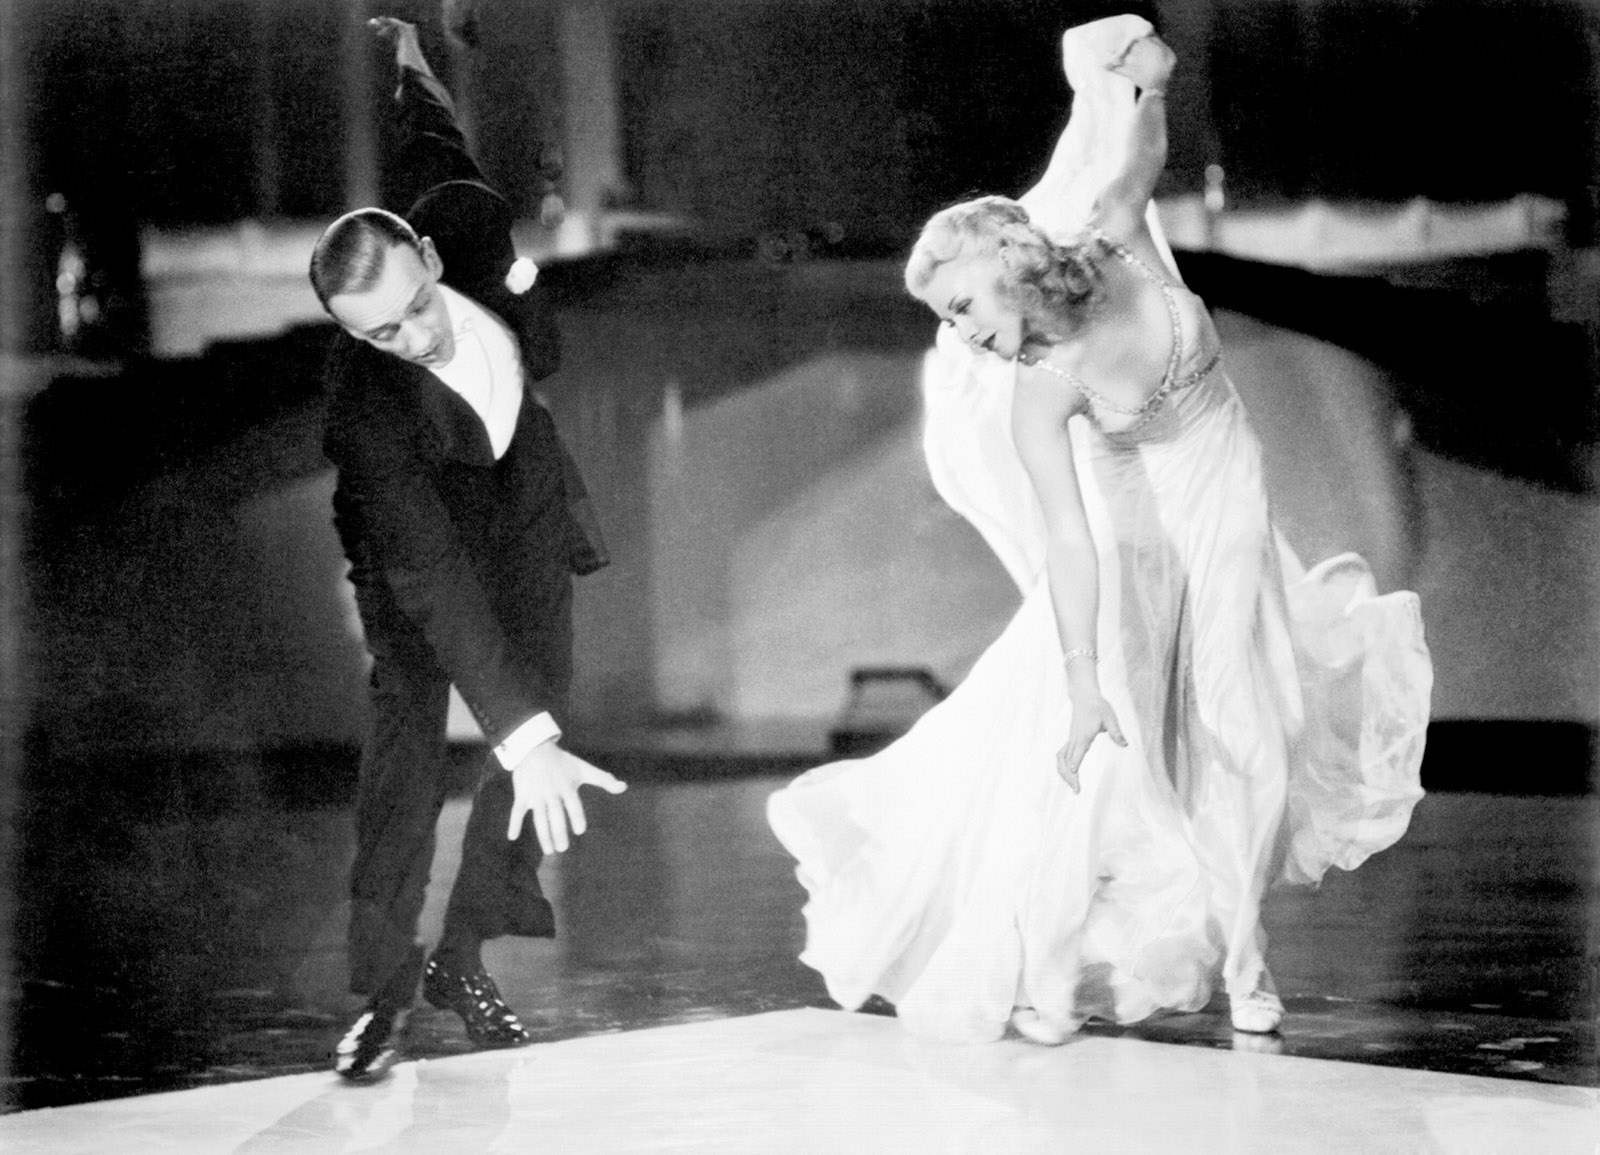 Fred Astaire and Ginger Rogers in Swing Time, 1936